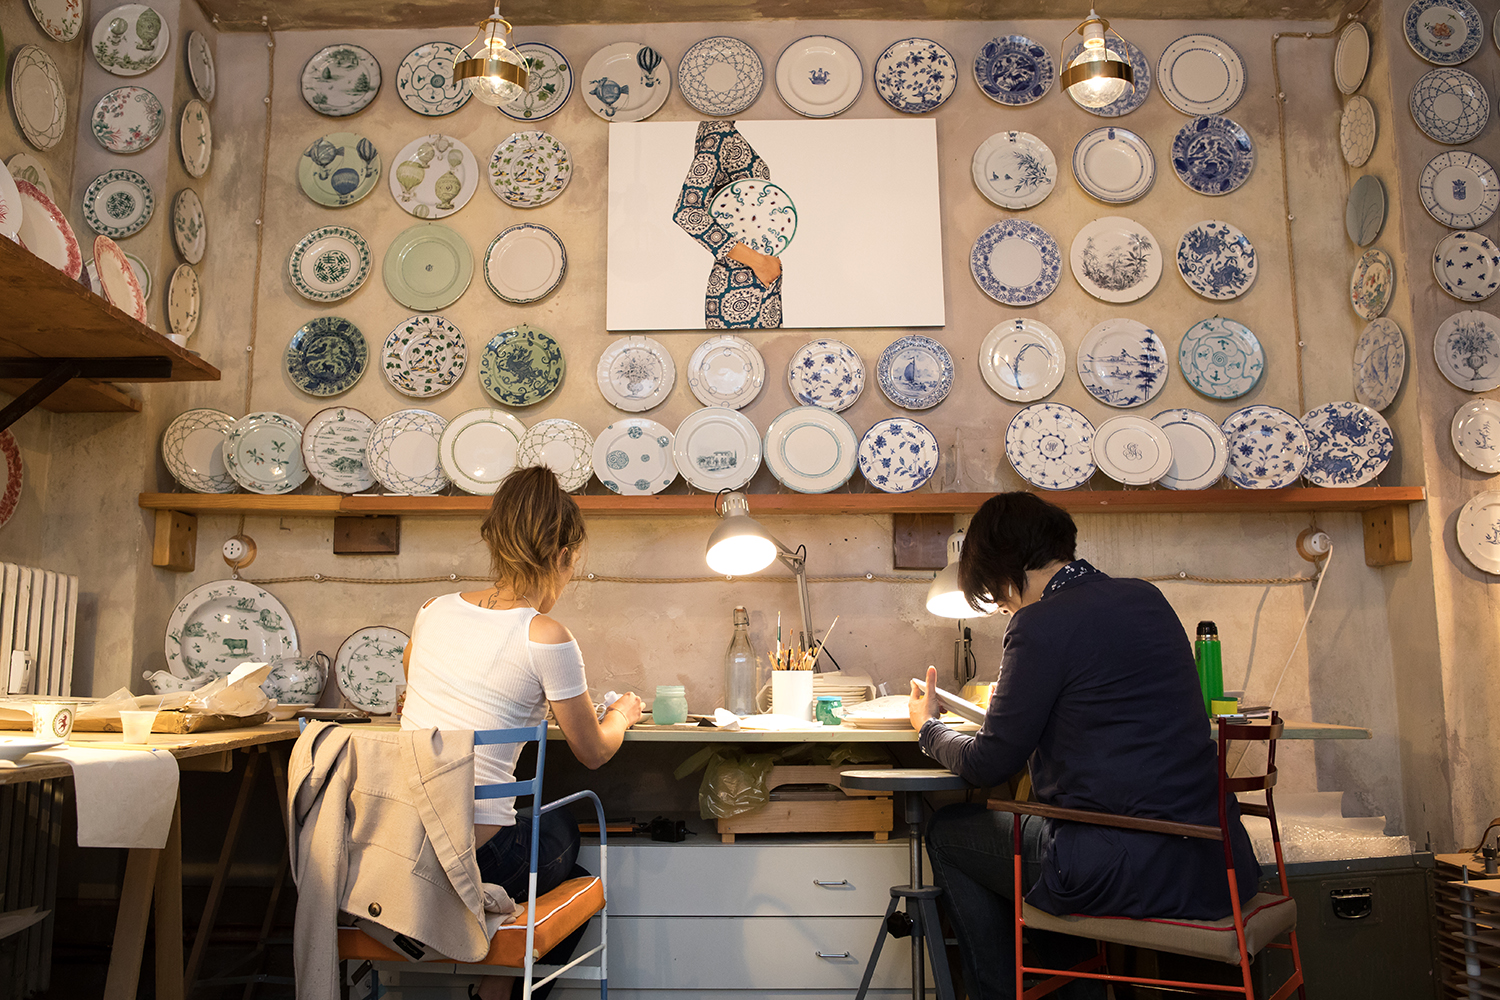 Paravincini ceramics professional profile portrait photography documentary Italy by Aimee Almstead 7.jpg